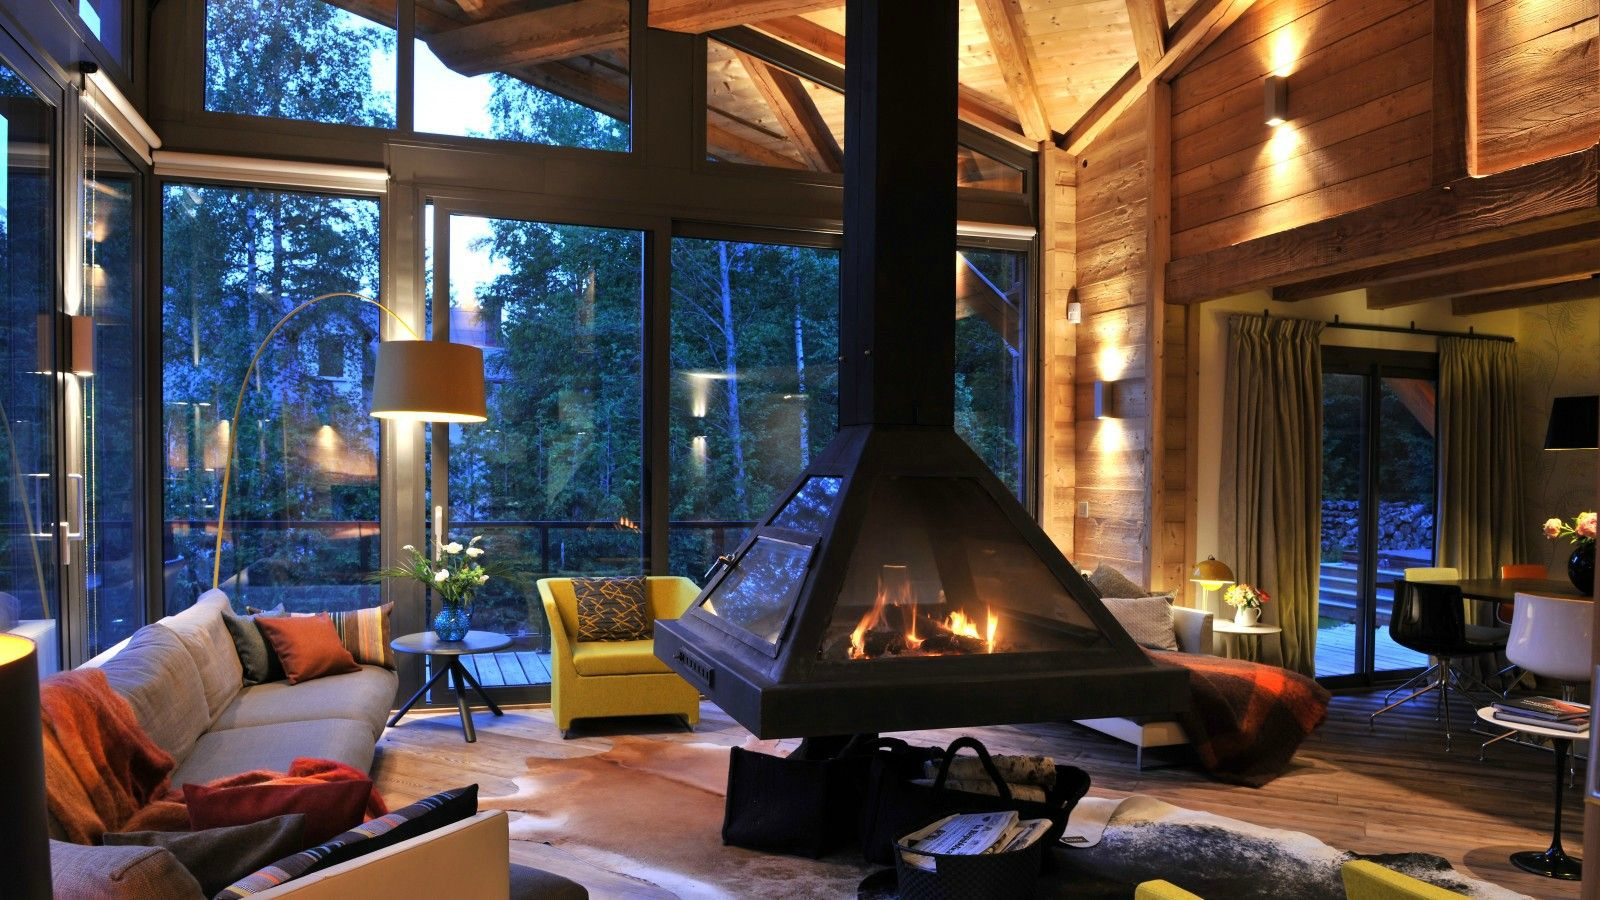 Cozy Room cozy living room with a floating fire place. [1600x900